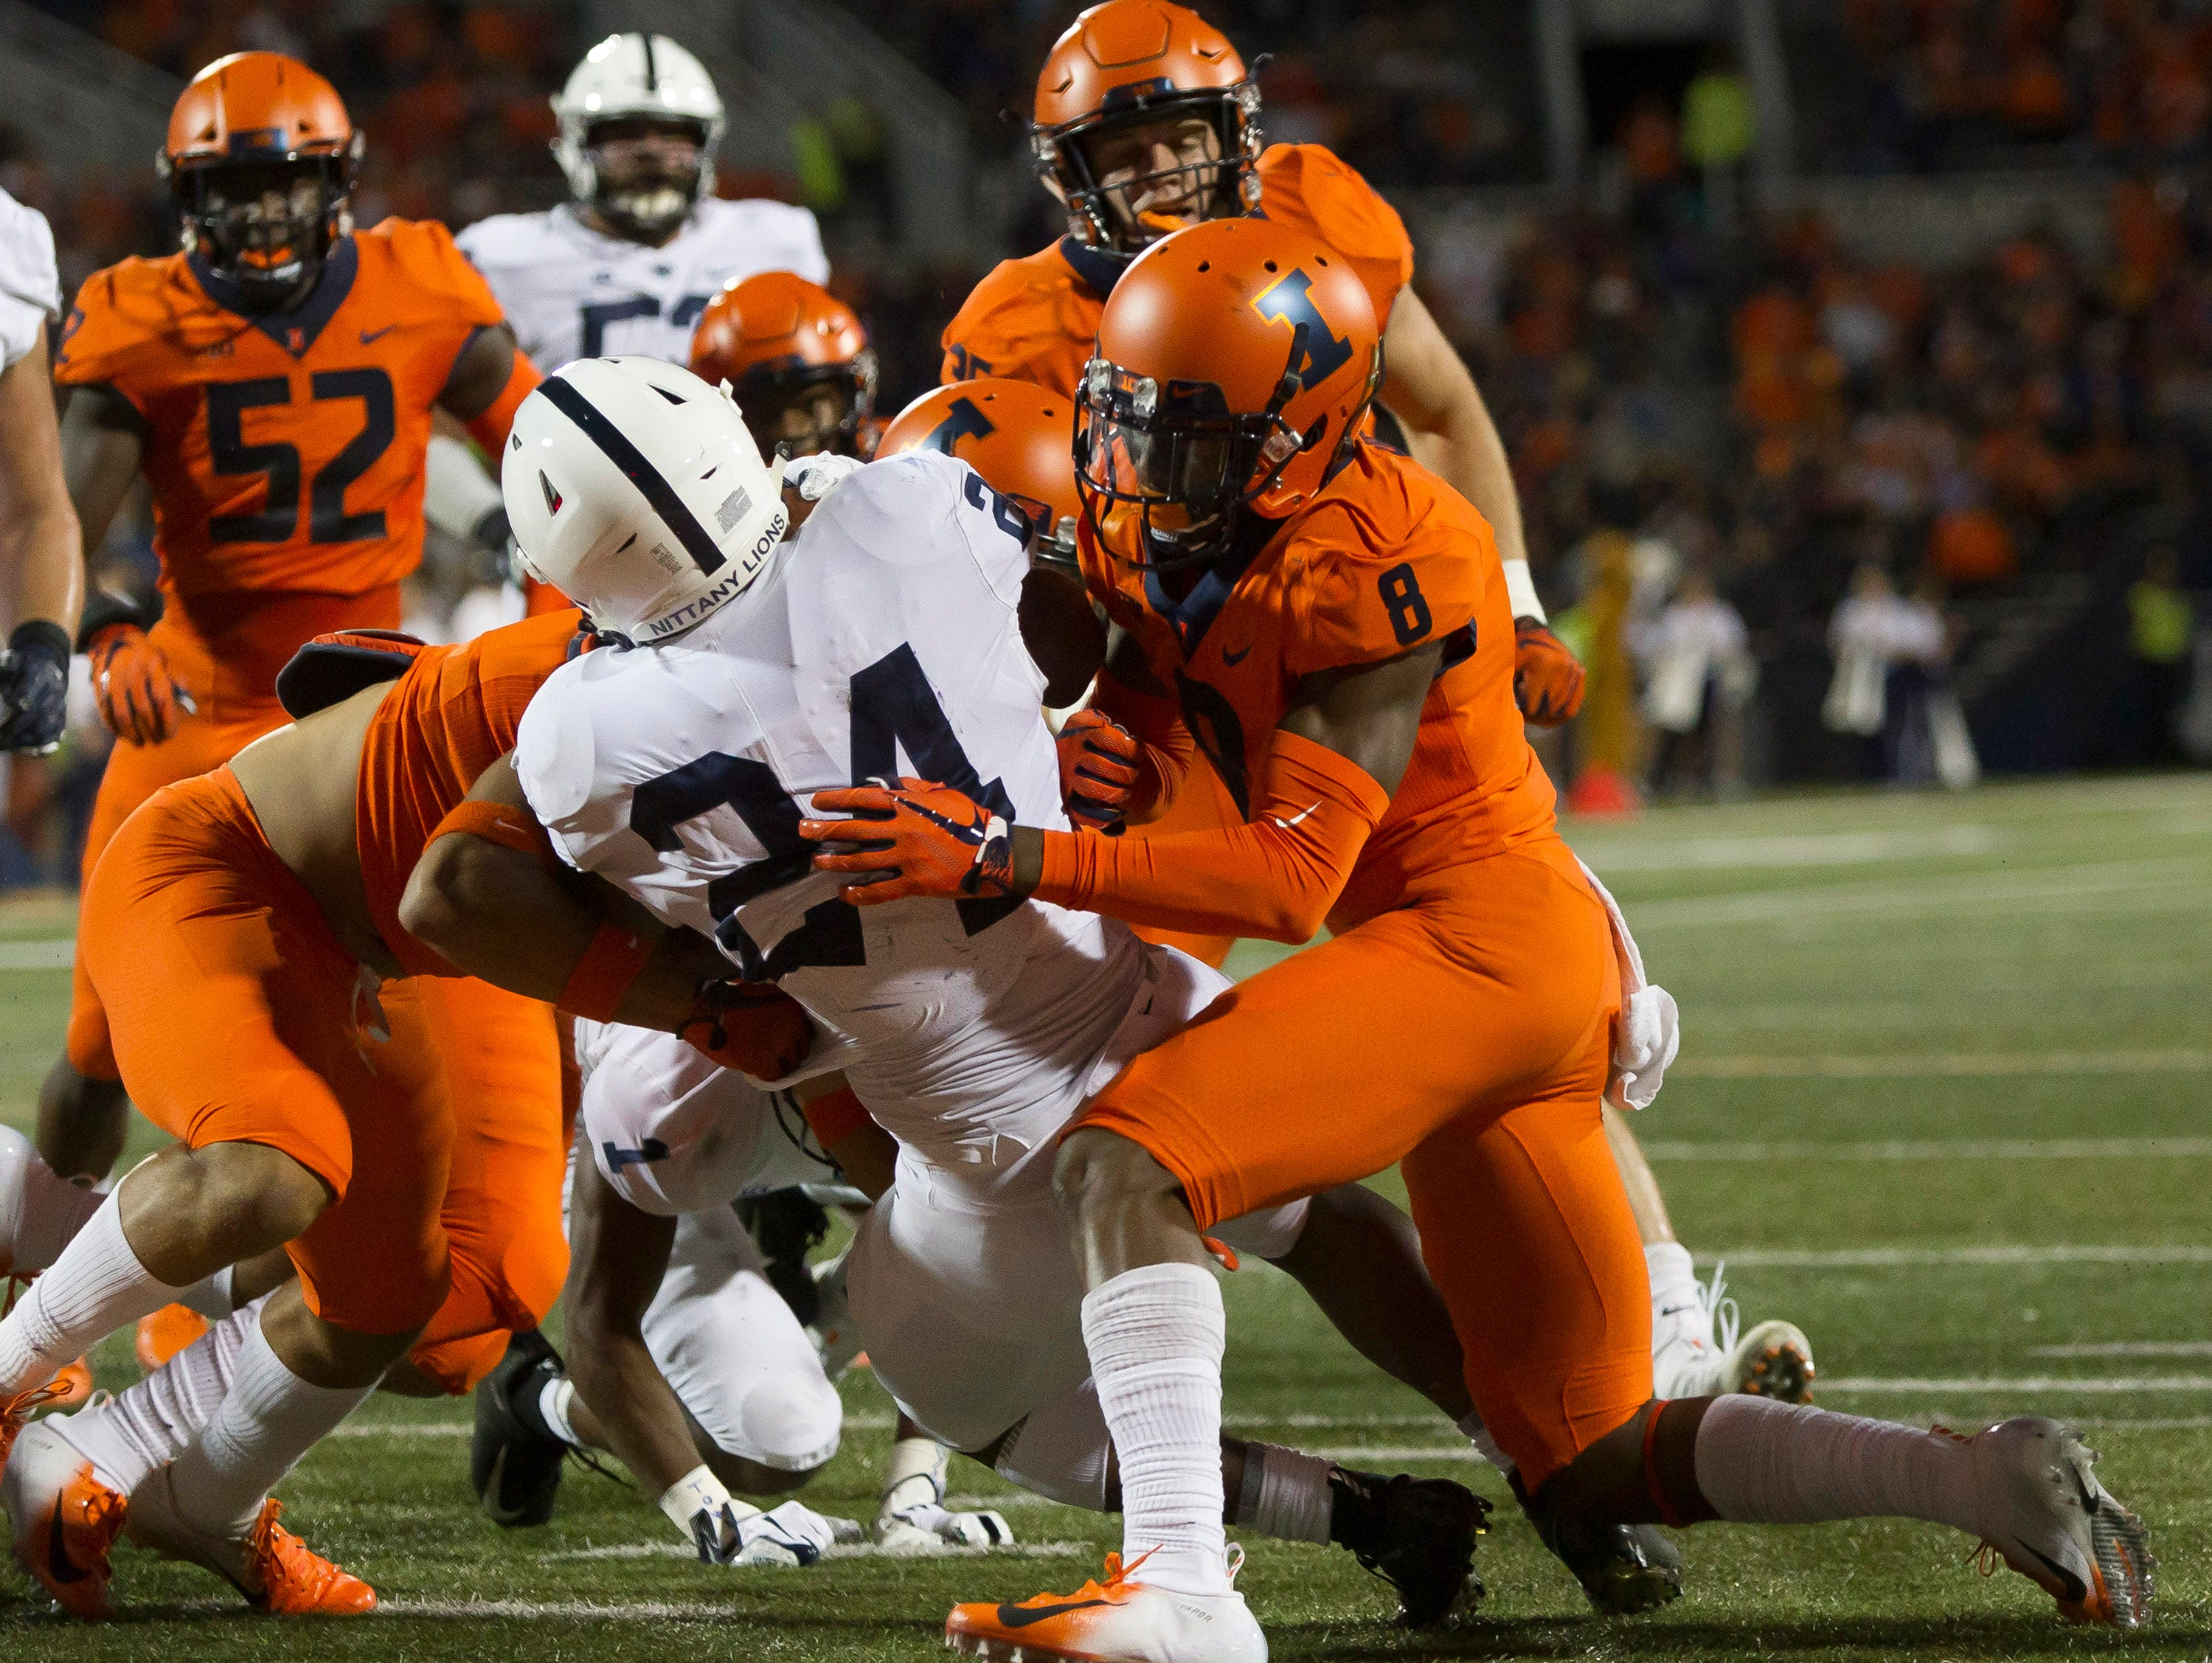 Illinois Fighting Illini defensive back Nate Hobbs (8) is unable to keep Penn State Nittany Lions running back Miles Sanders (24) from crossing the goal line during the first quarter at Memorial Stadium.